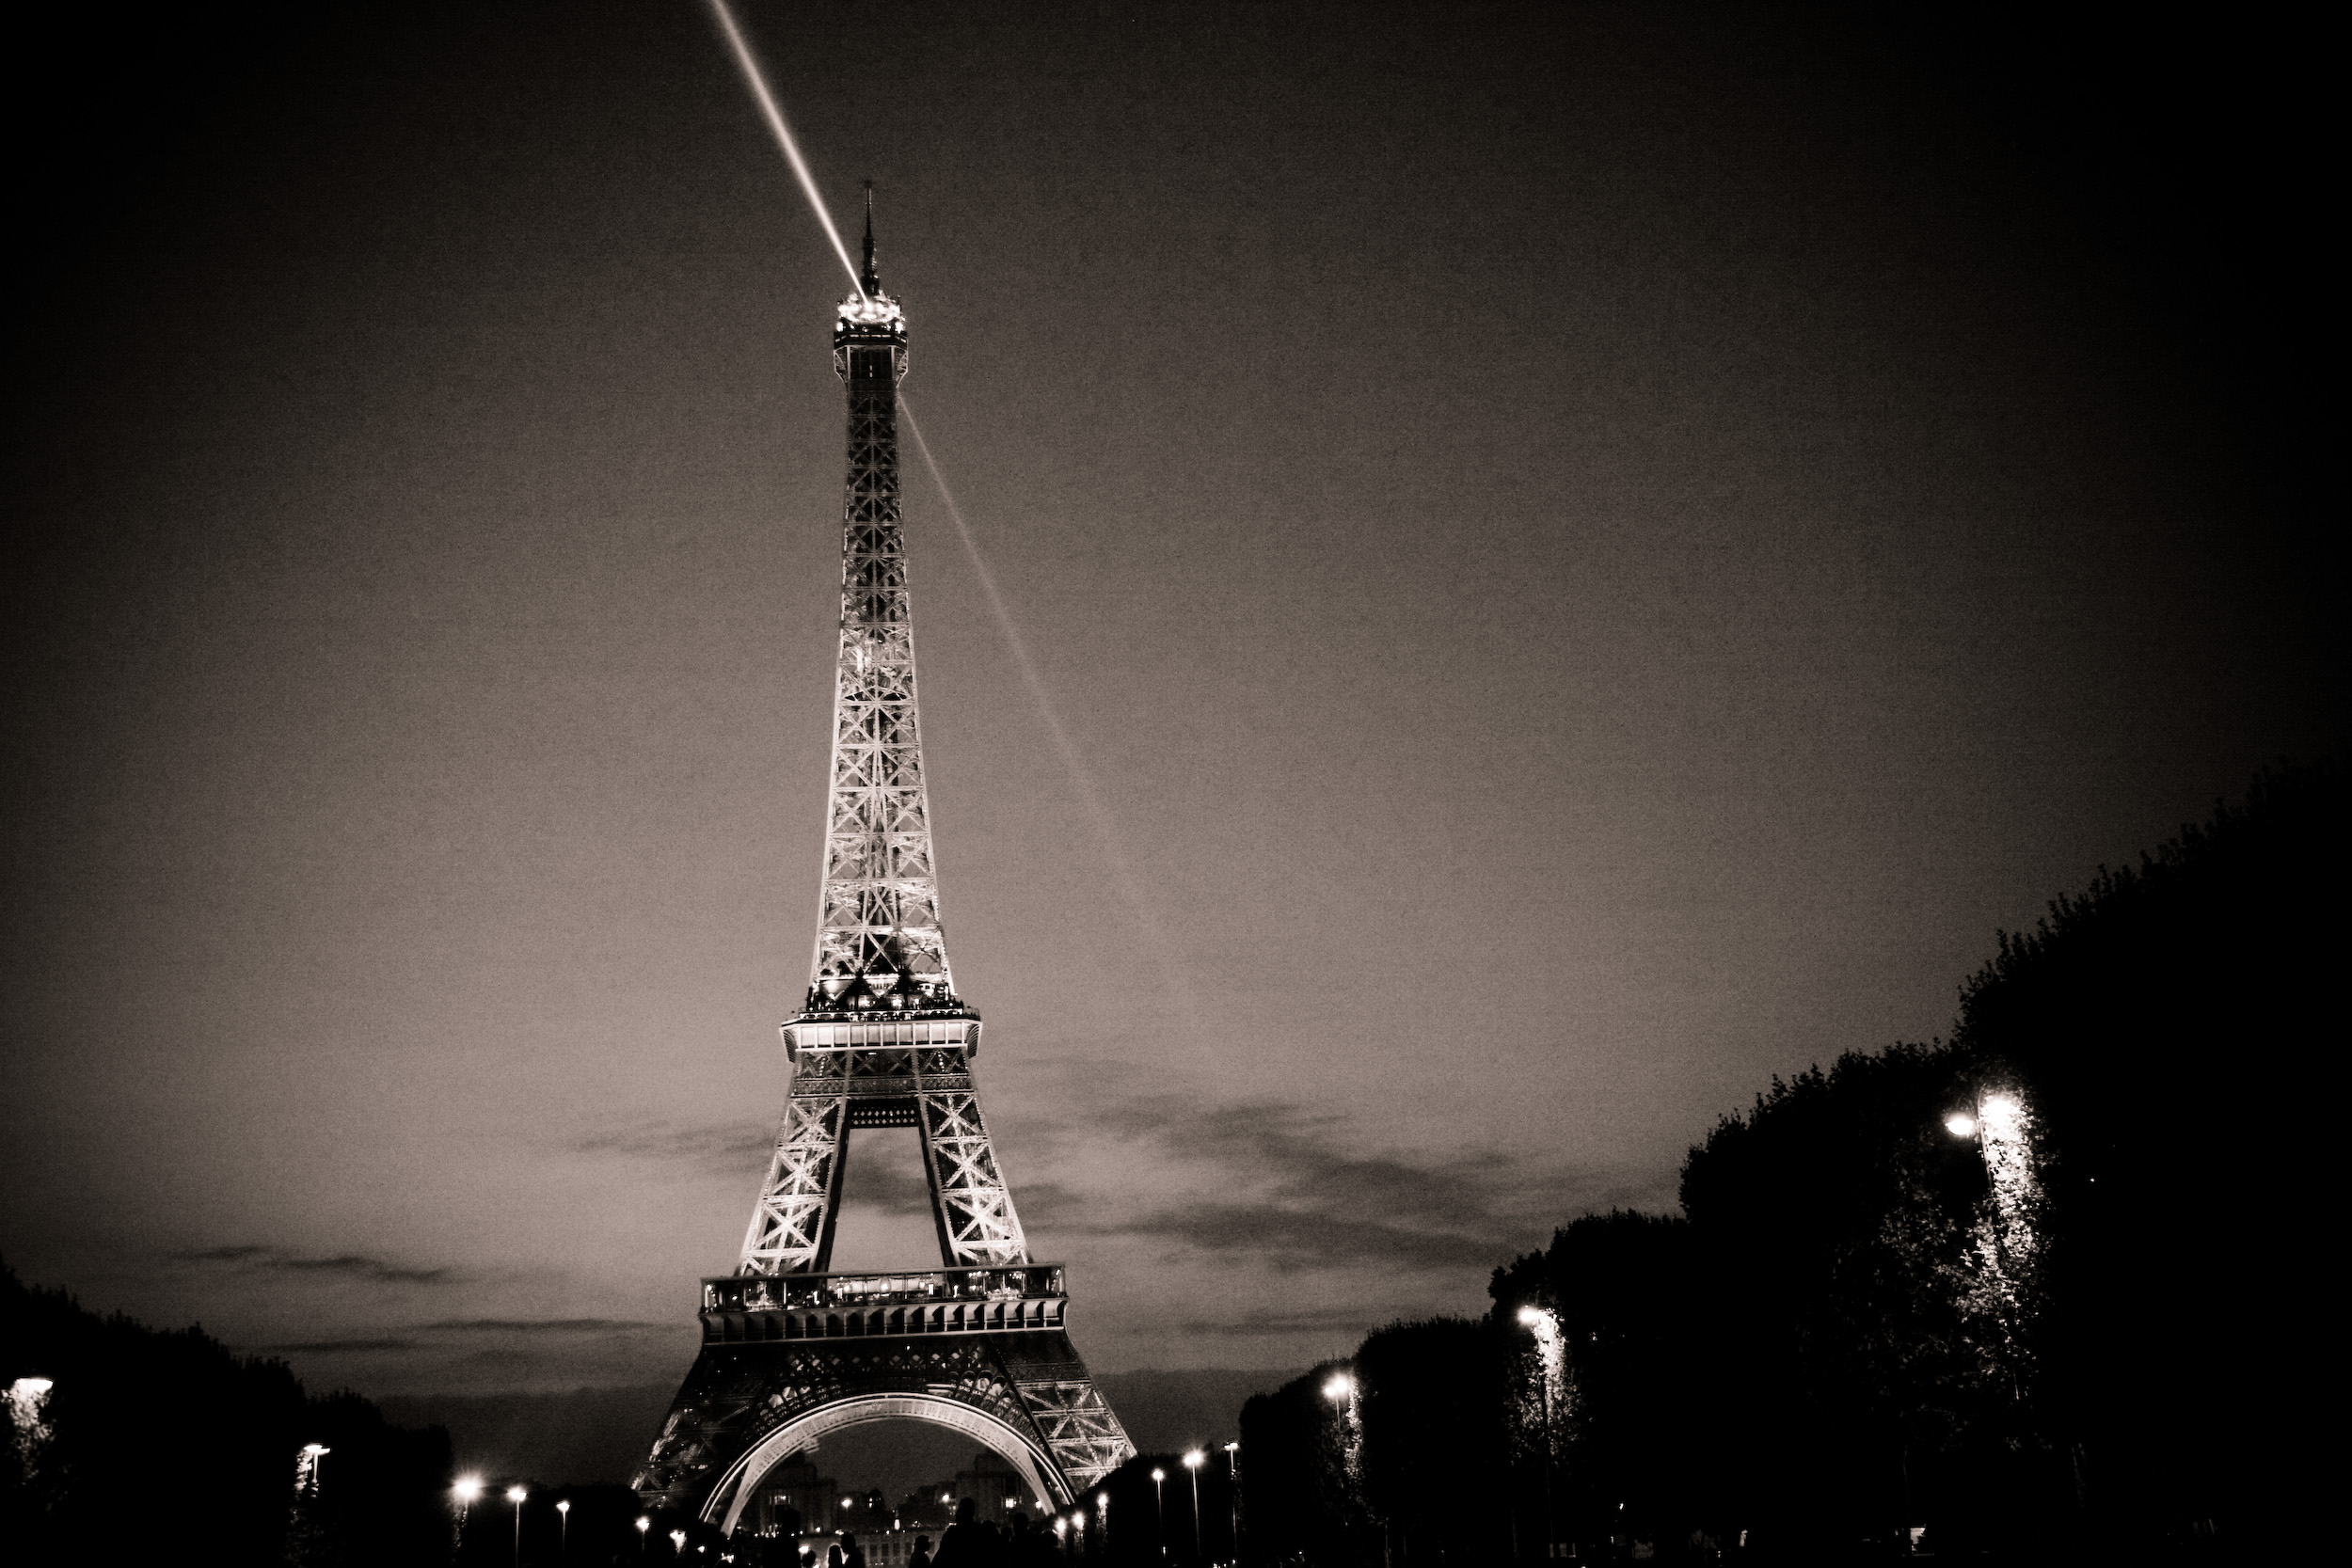 A duotone conversion of anotherwise vibrantly colorful Eiffel Tower at dusk.  Mell and I had a picnic on the Champ de Mars and watched night fall over the Eiffel.